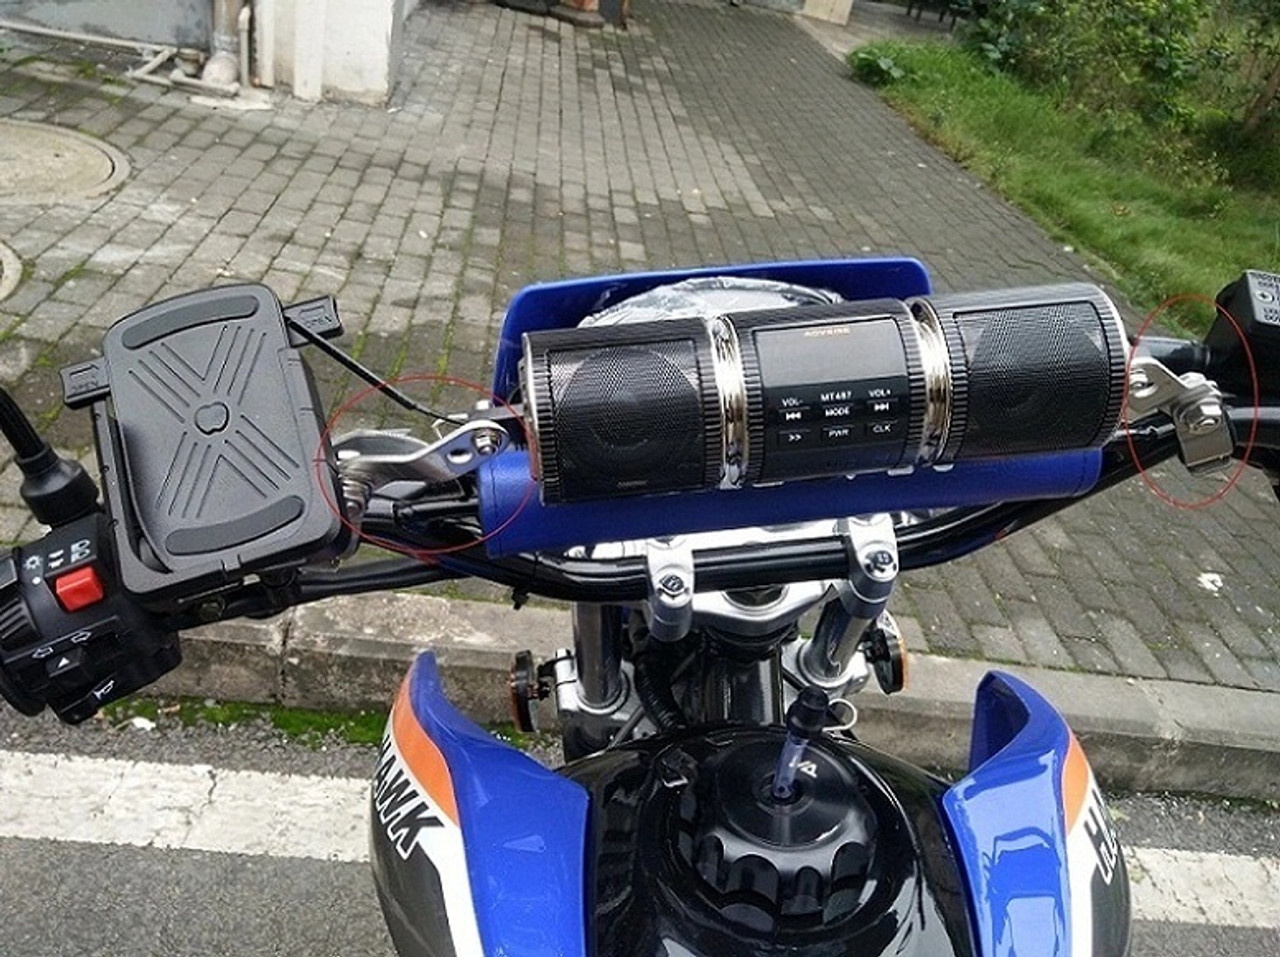 New Hawk 250 DLX With Bluetooth Speakers and Phone Holder